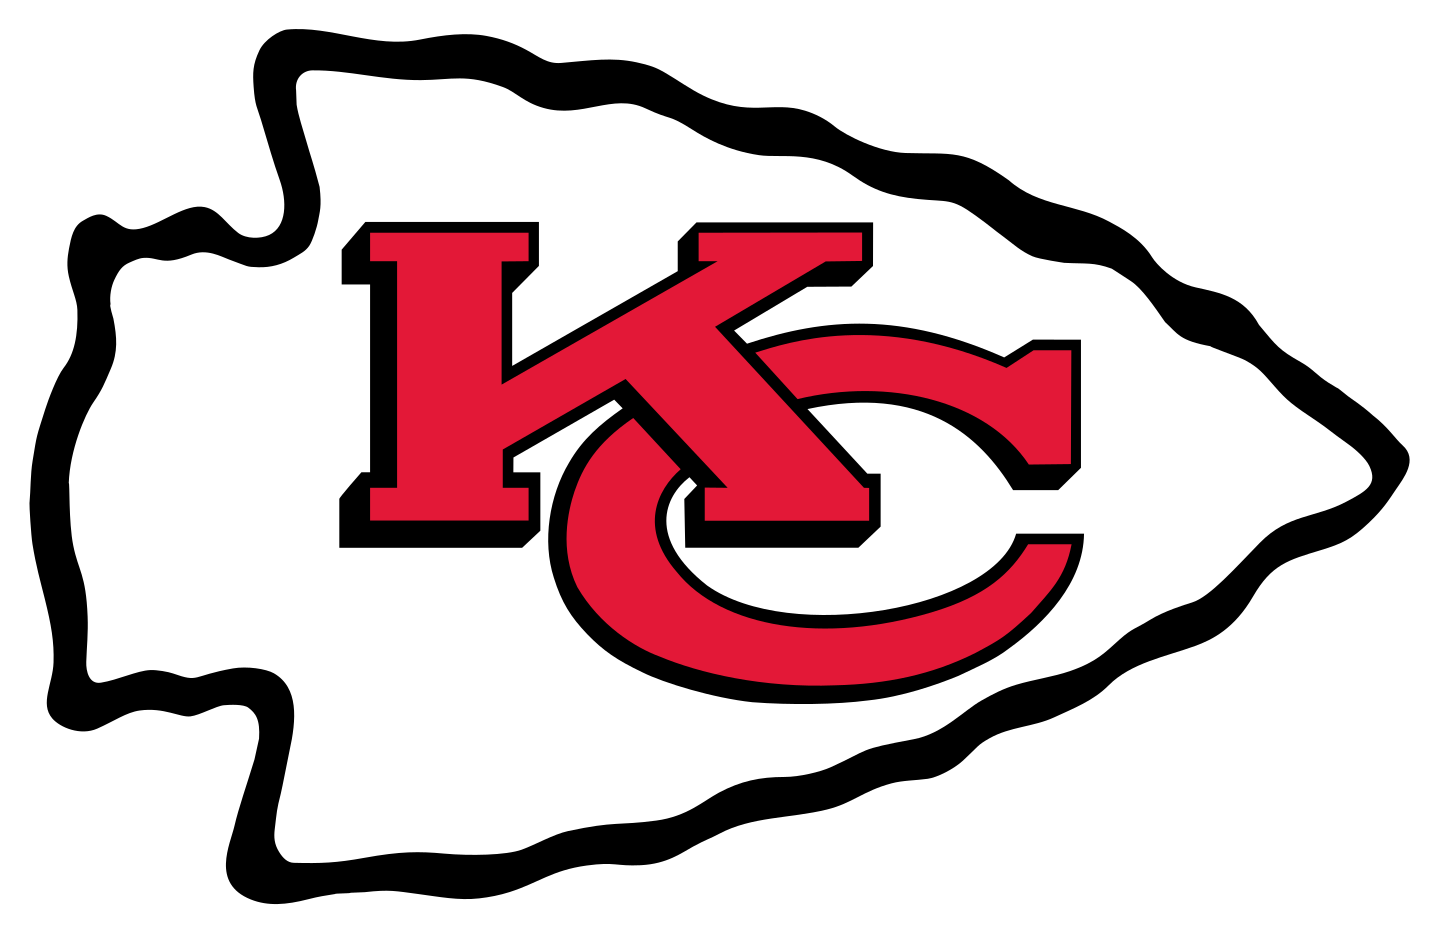 kansas city chiefs logo 2 - Kansas City Chiefs Logo